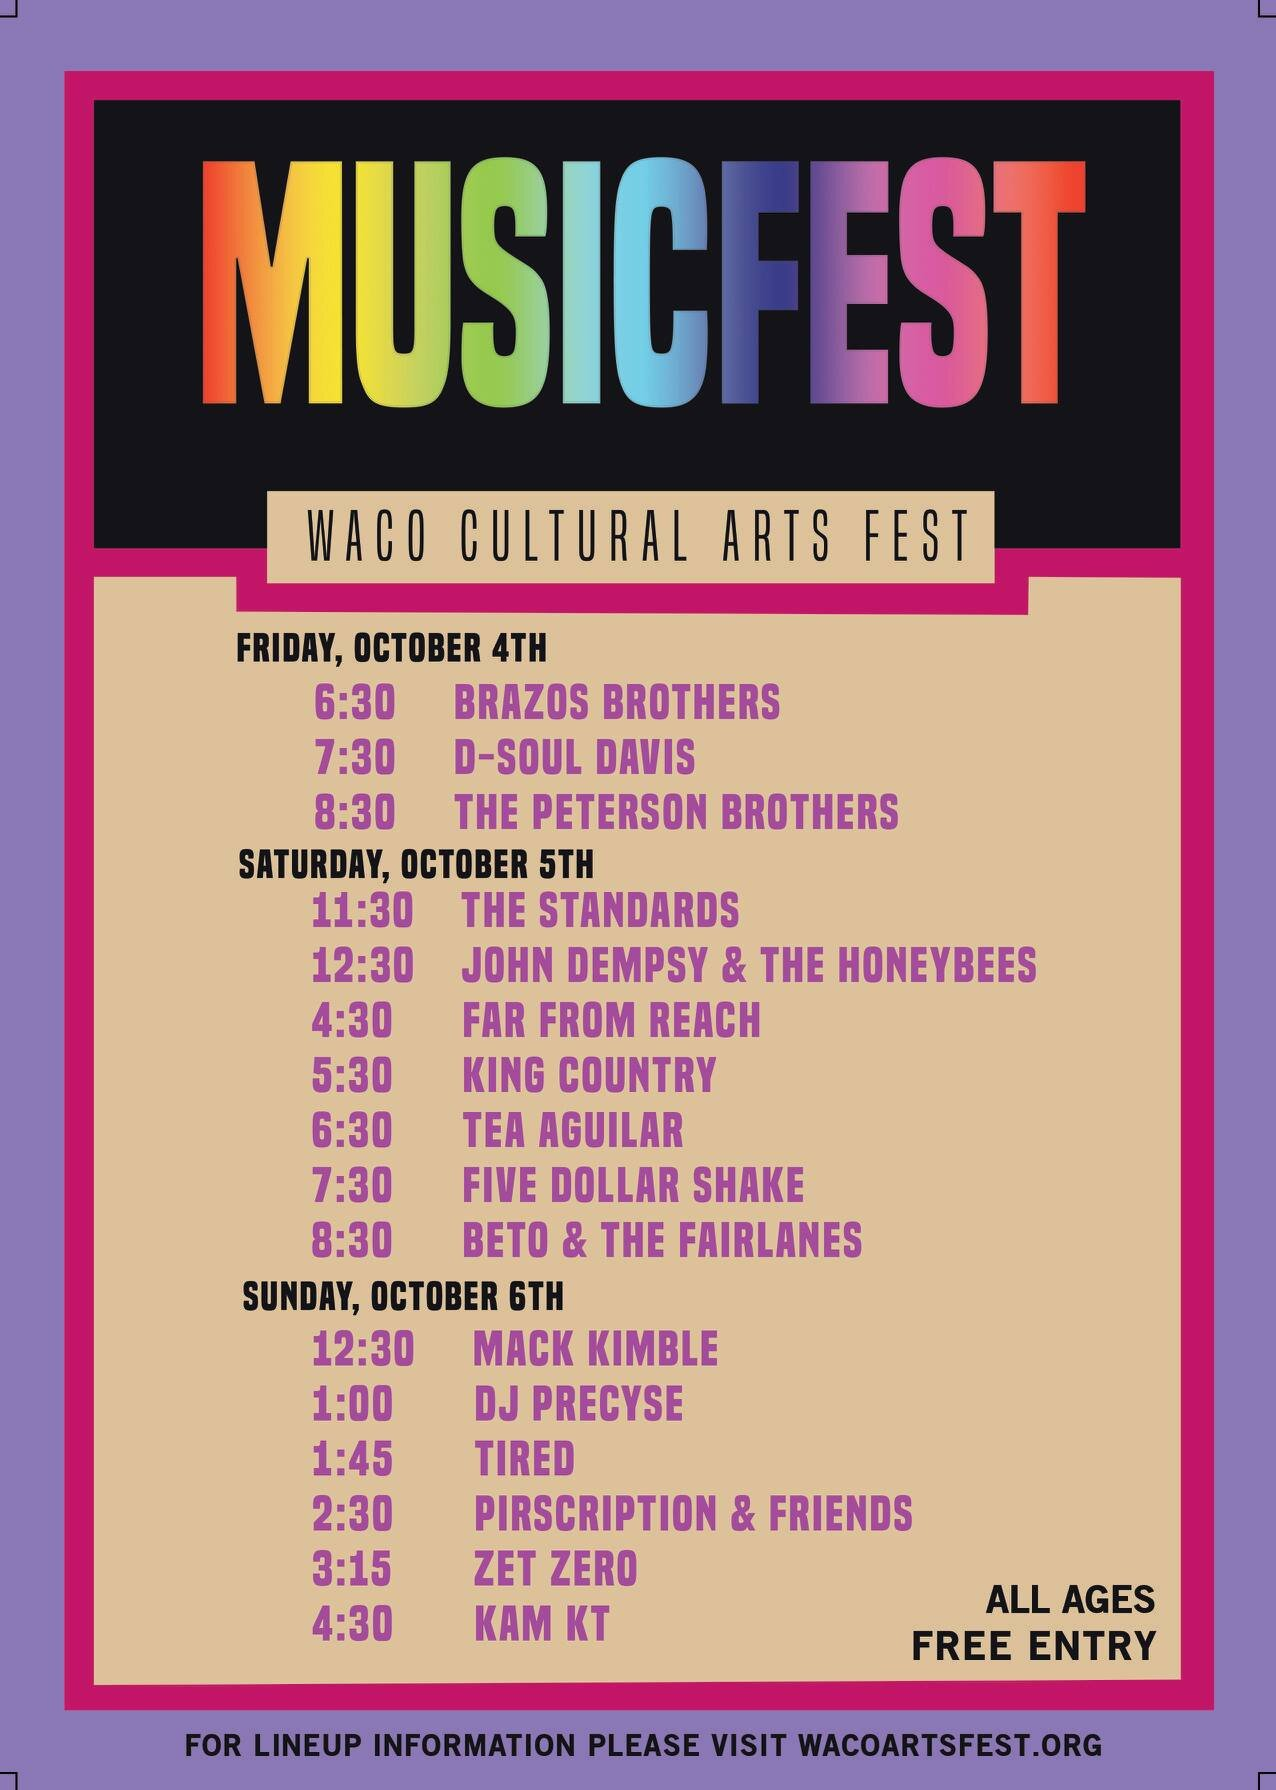 MusicFest Line Up. Visit WacoArtsFest.org for more information. Graphic by Waco Cultural Arts Fest & Keep Waco Loud.